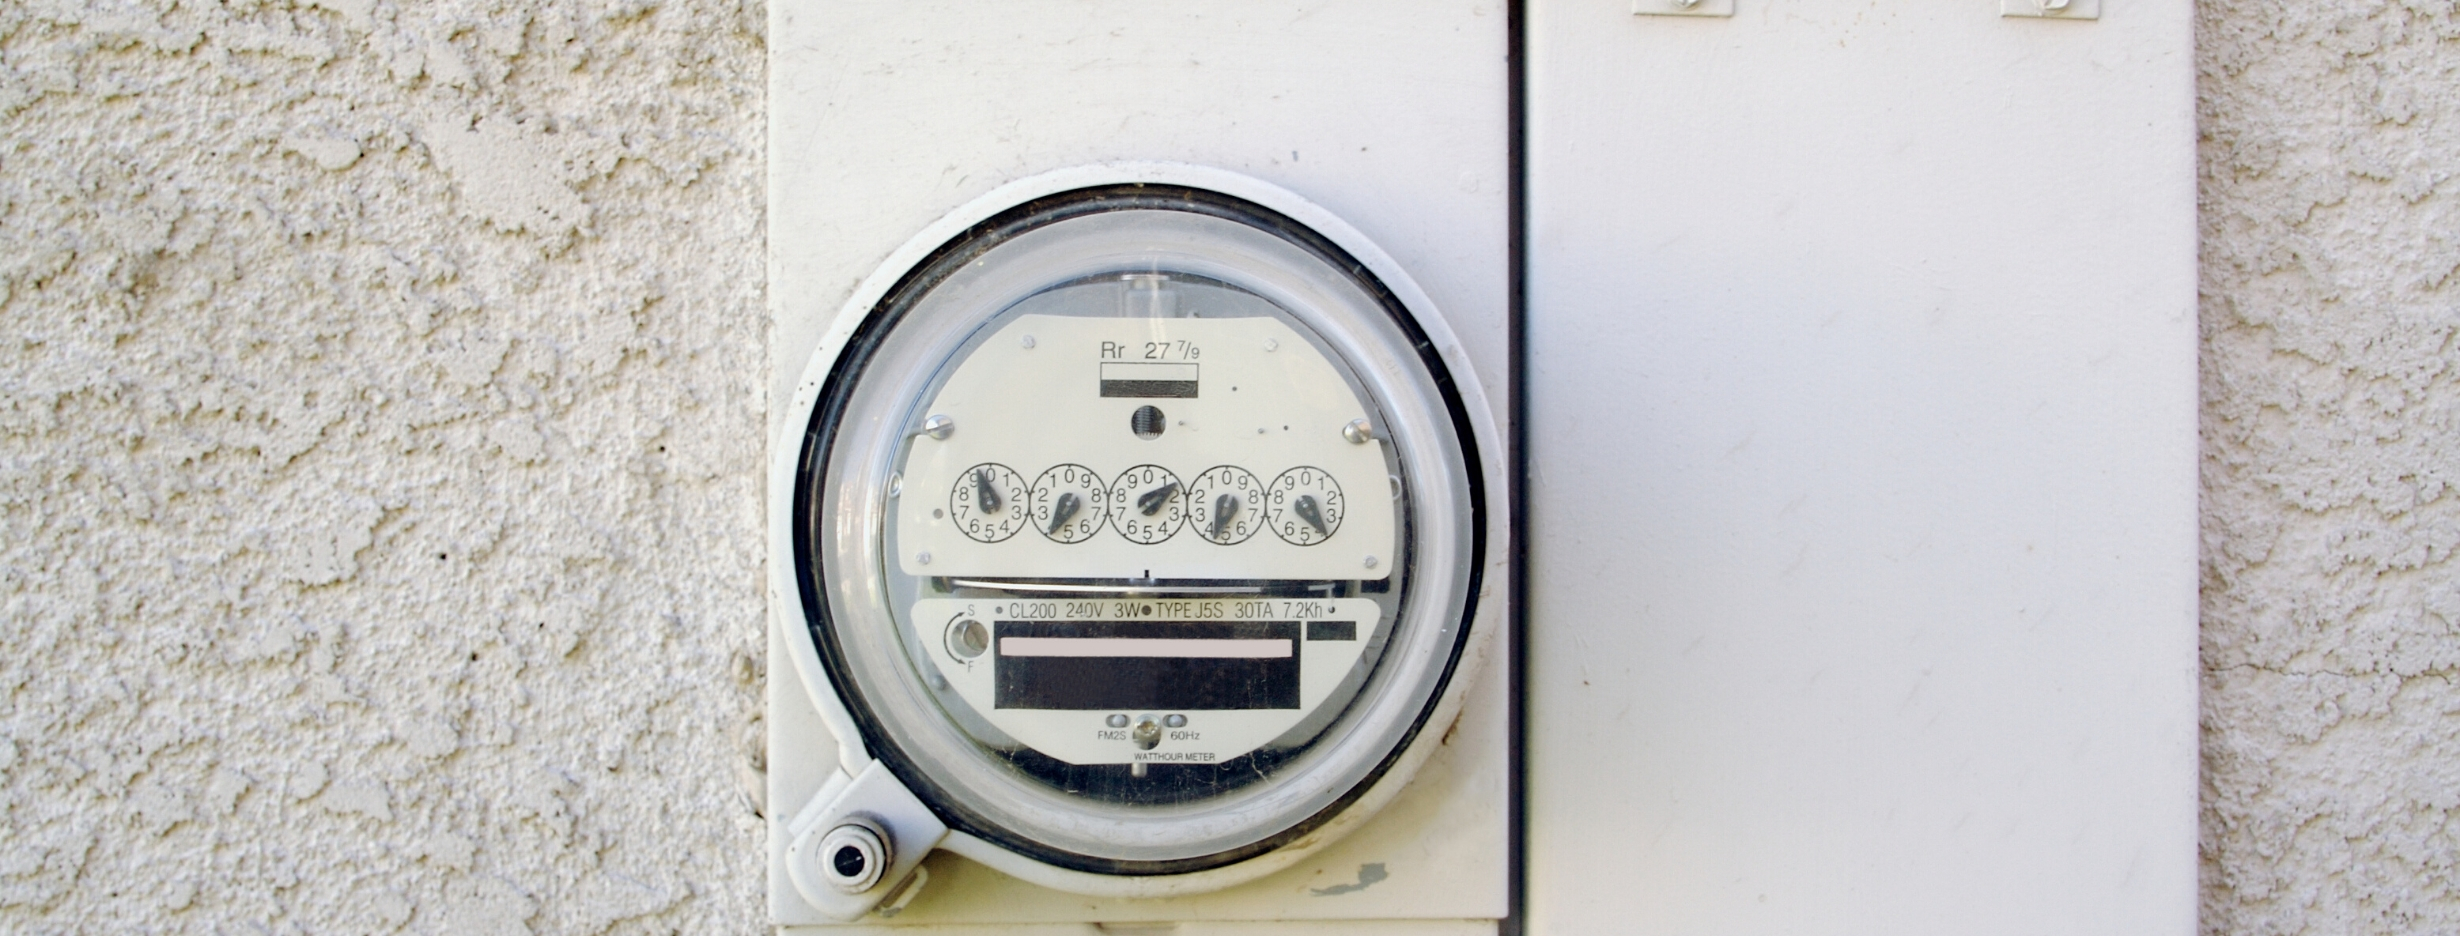 Estimated meter reads blowing out power bills Image